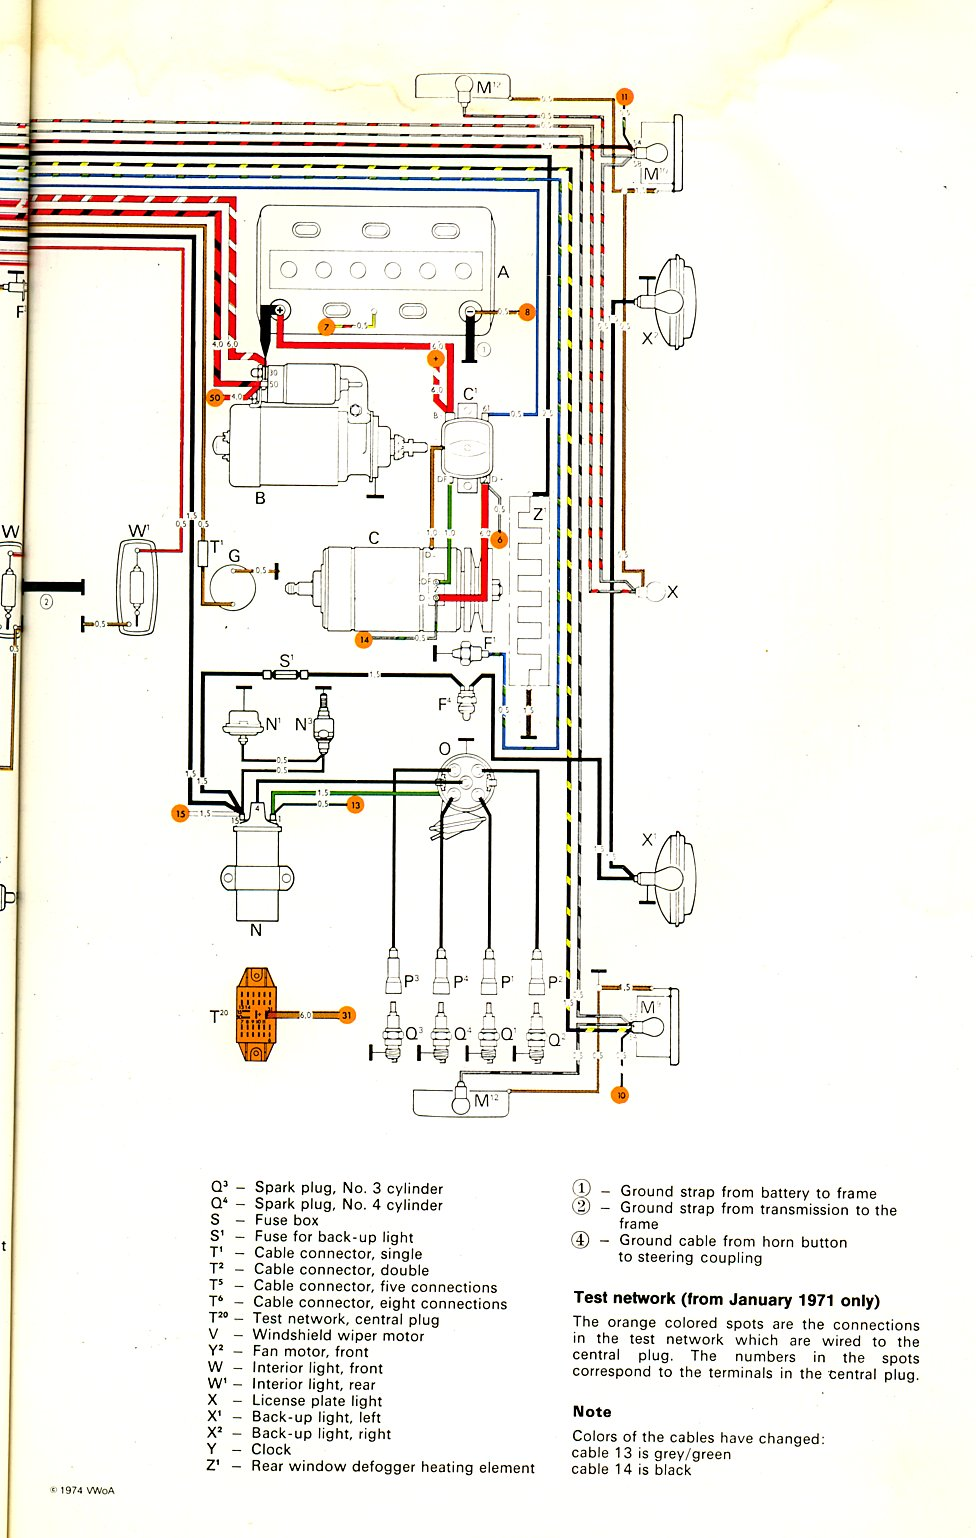 1978 Corvette Blower Motor Wiring Diagram Reinvent Your 79 Ac Thesamba Com Type 2 Diagrams Chart